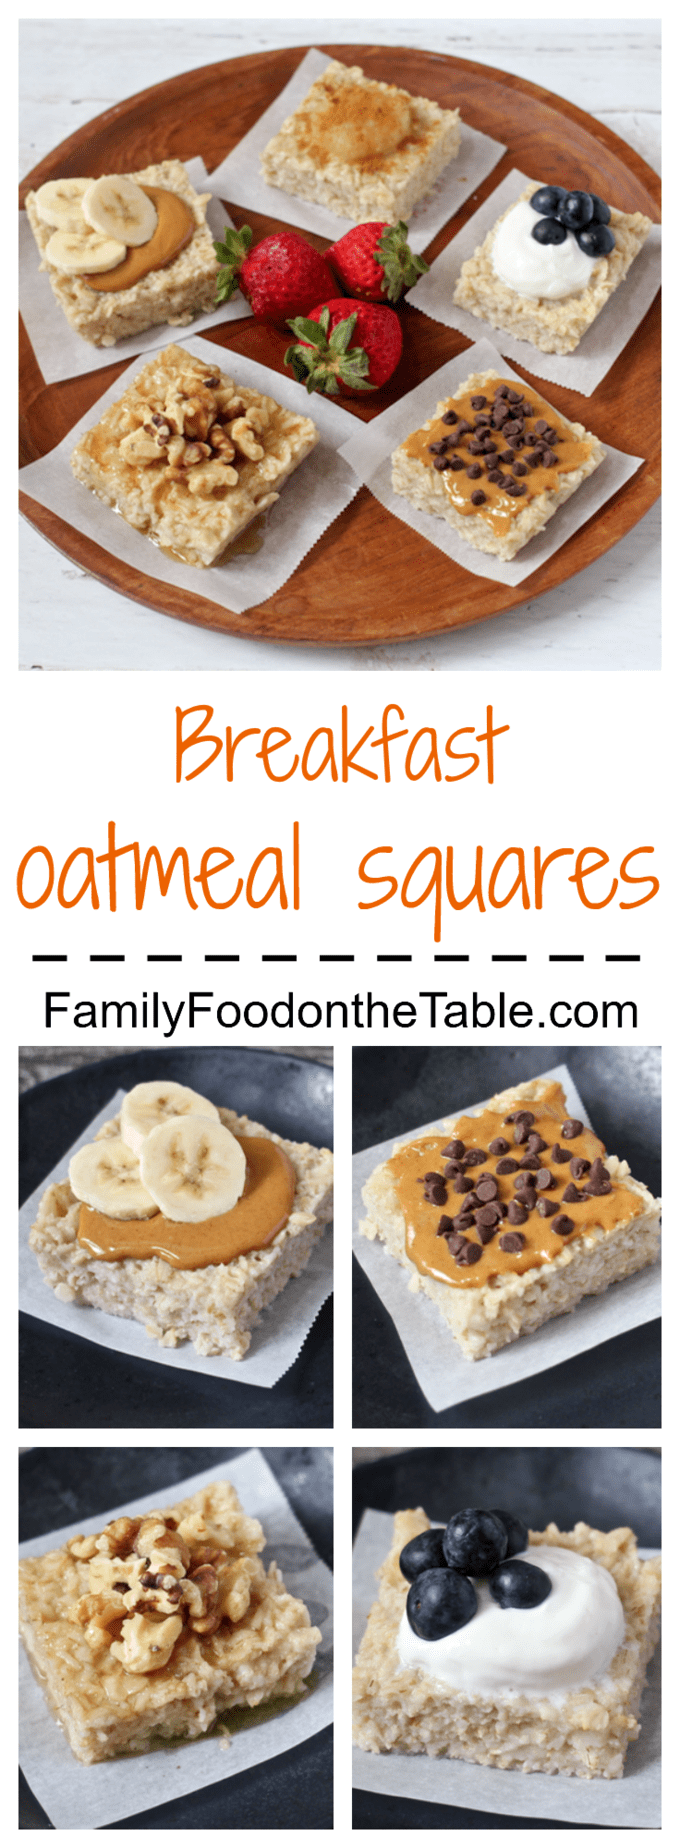 Breakfast oatmeal squares - an easy make-ahead, customizeable breakfast! | FamilyFoodontheTable.com